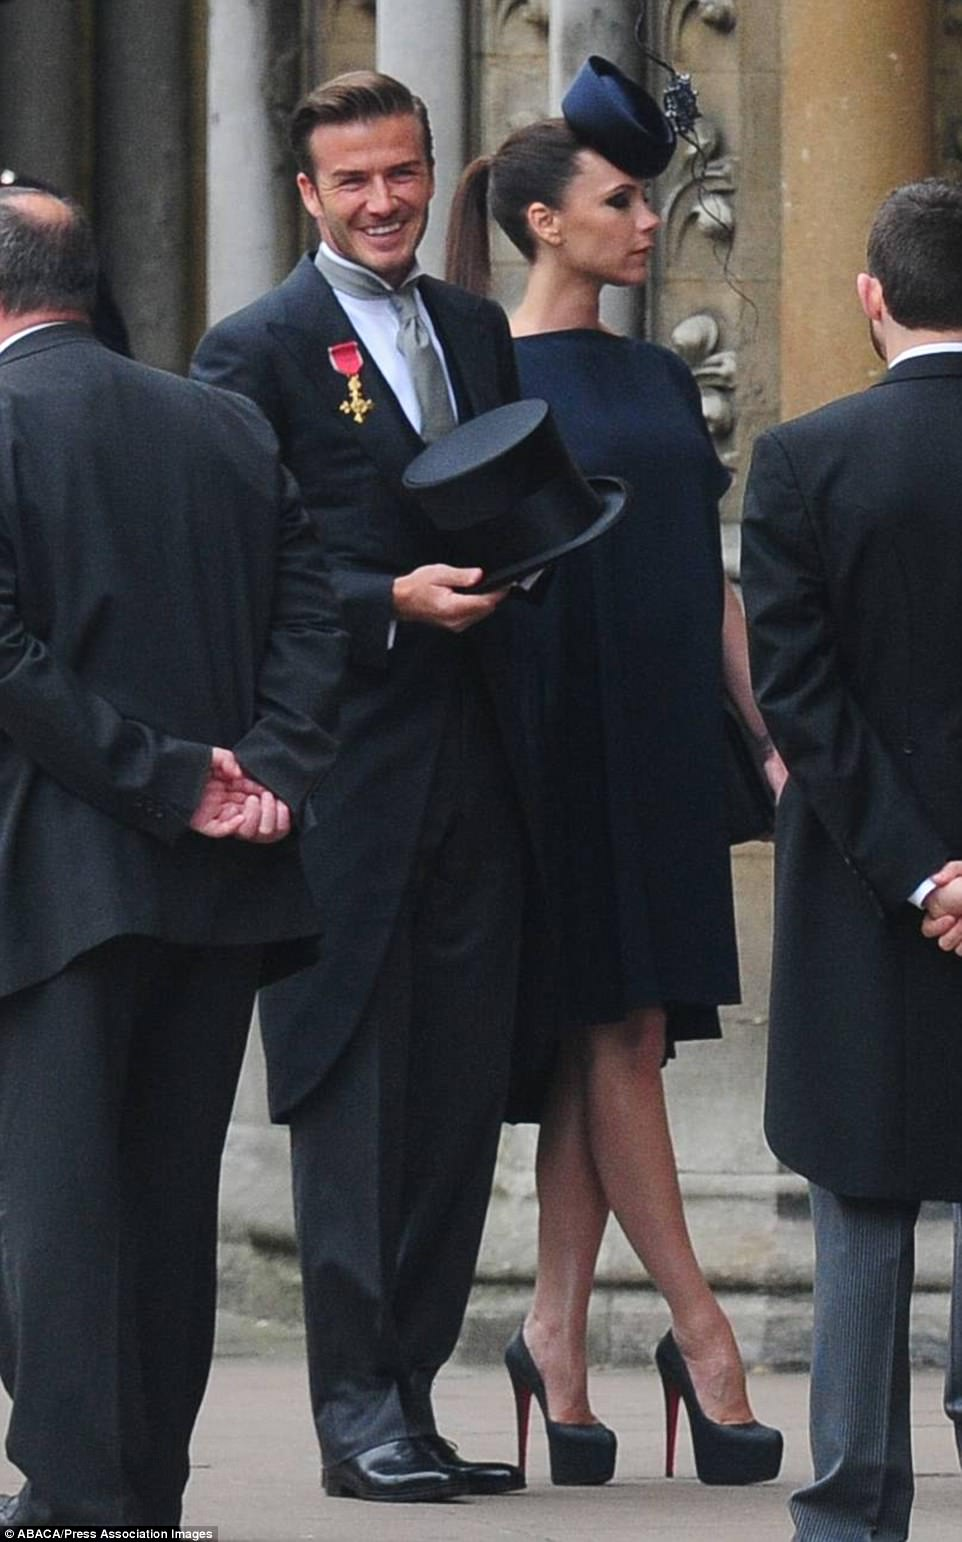 VIP invite: David and Victoria arriving at Westminster Abbey for the wedding of Prince William to Kate Middleton, in London, UK on April 29, 2011